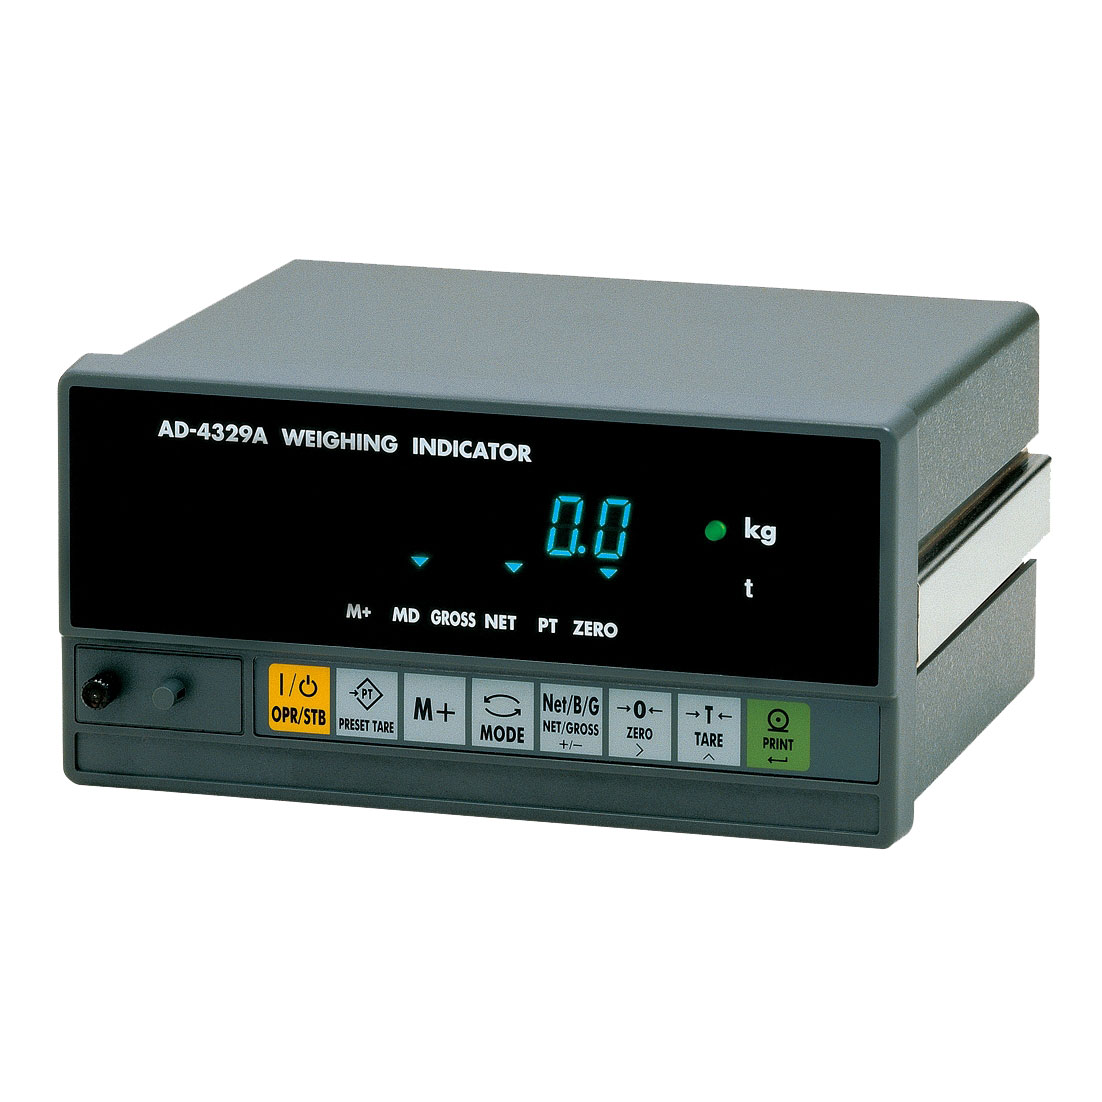 AD-4329 Static Weighing Indicator - Option